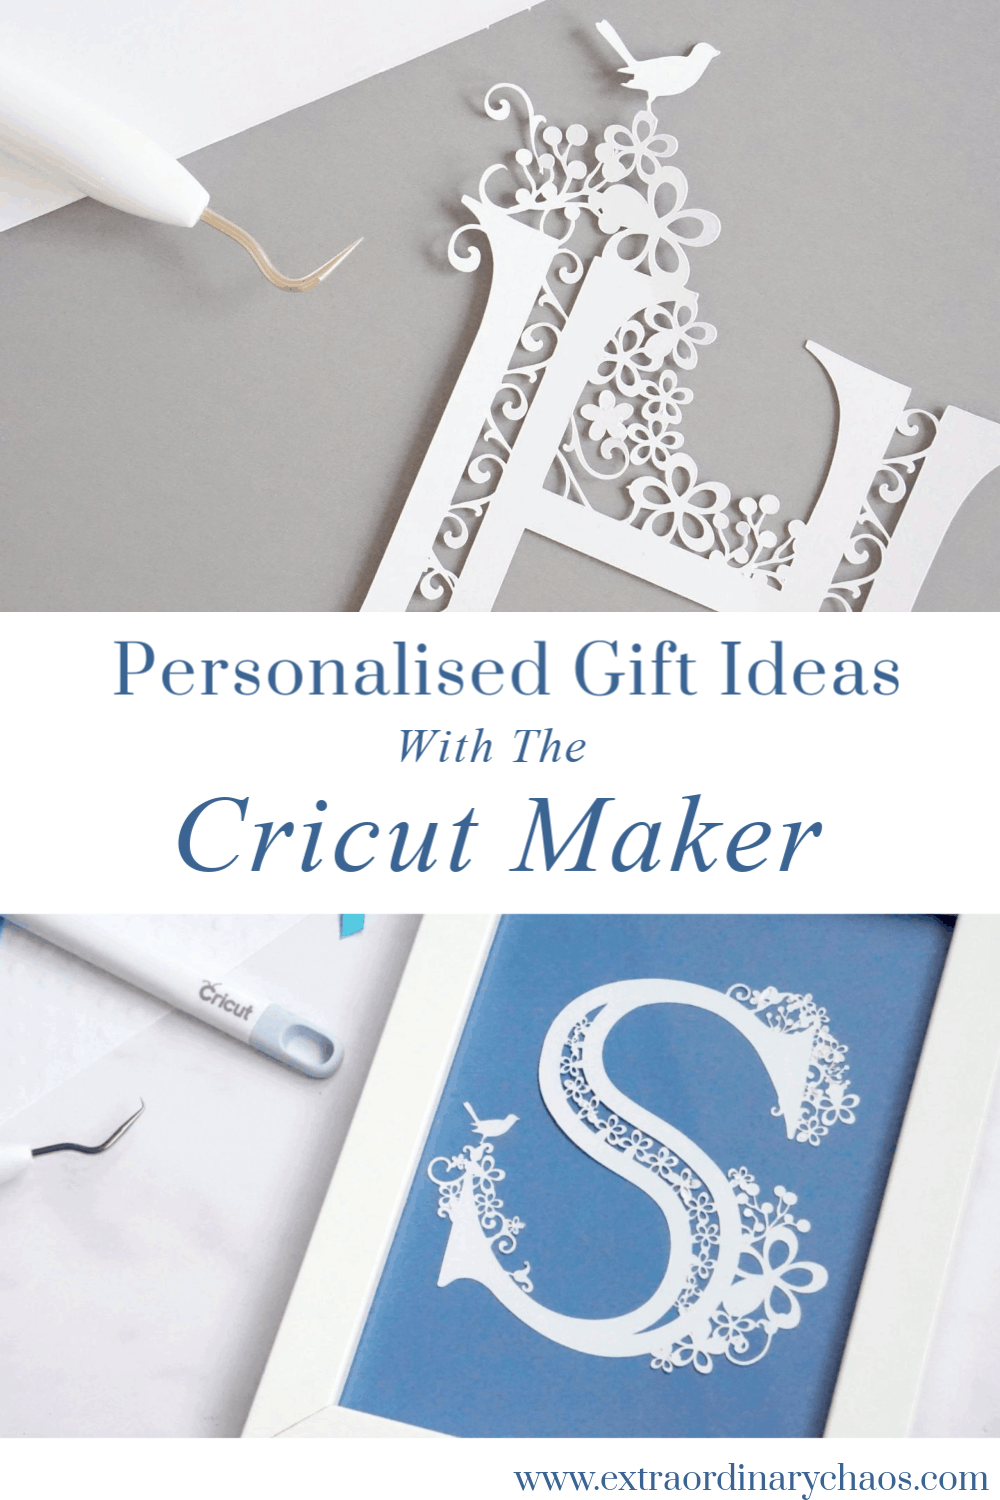 Personalised Gift Ideas for Weddings, Christenings and Birthdays with the Cricut Maker #personalisedgift #weddinggift #christeninggift #papercuts